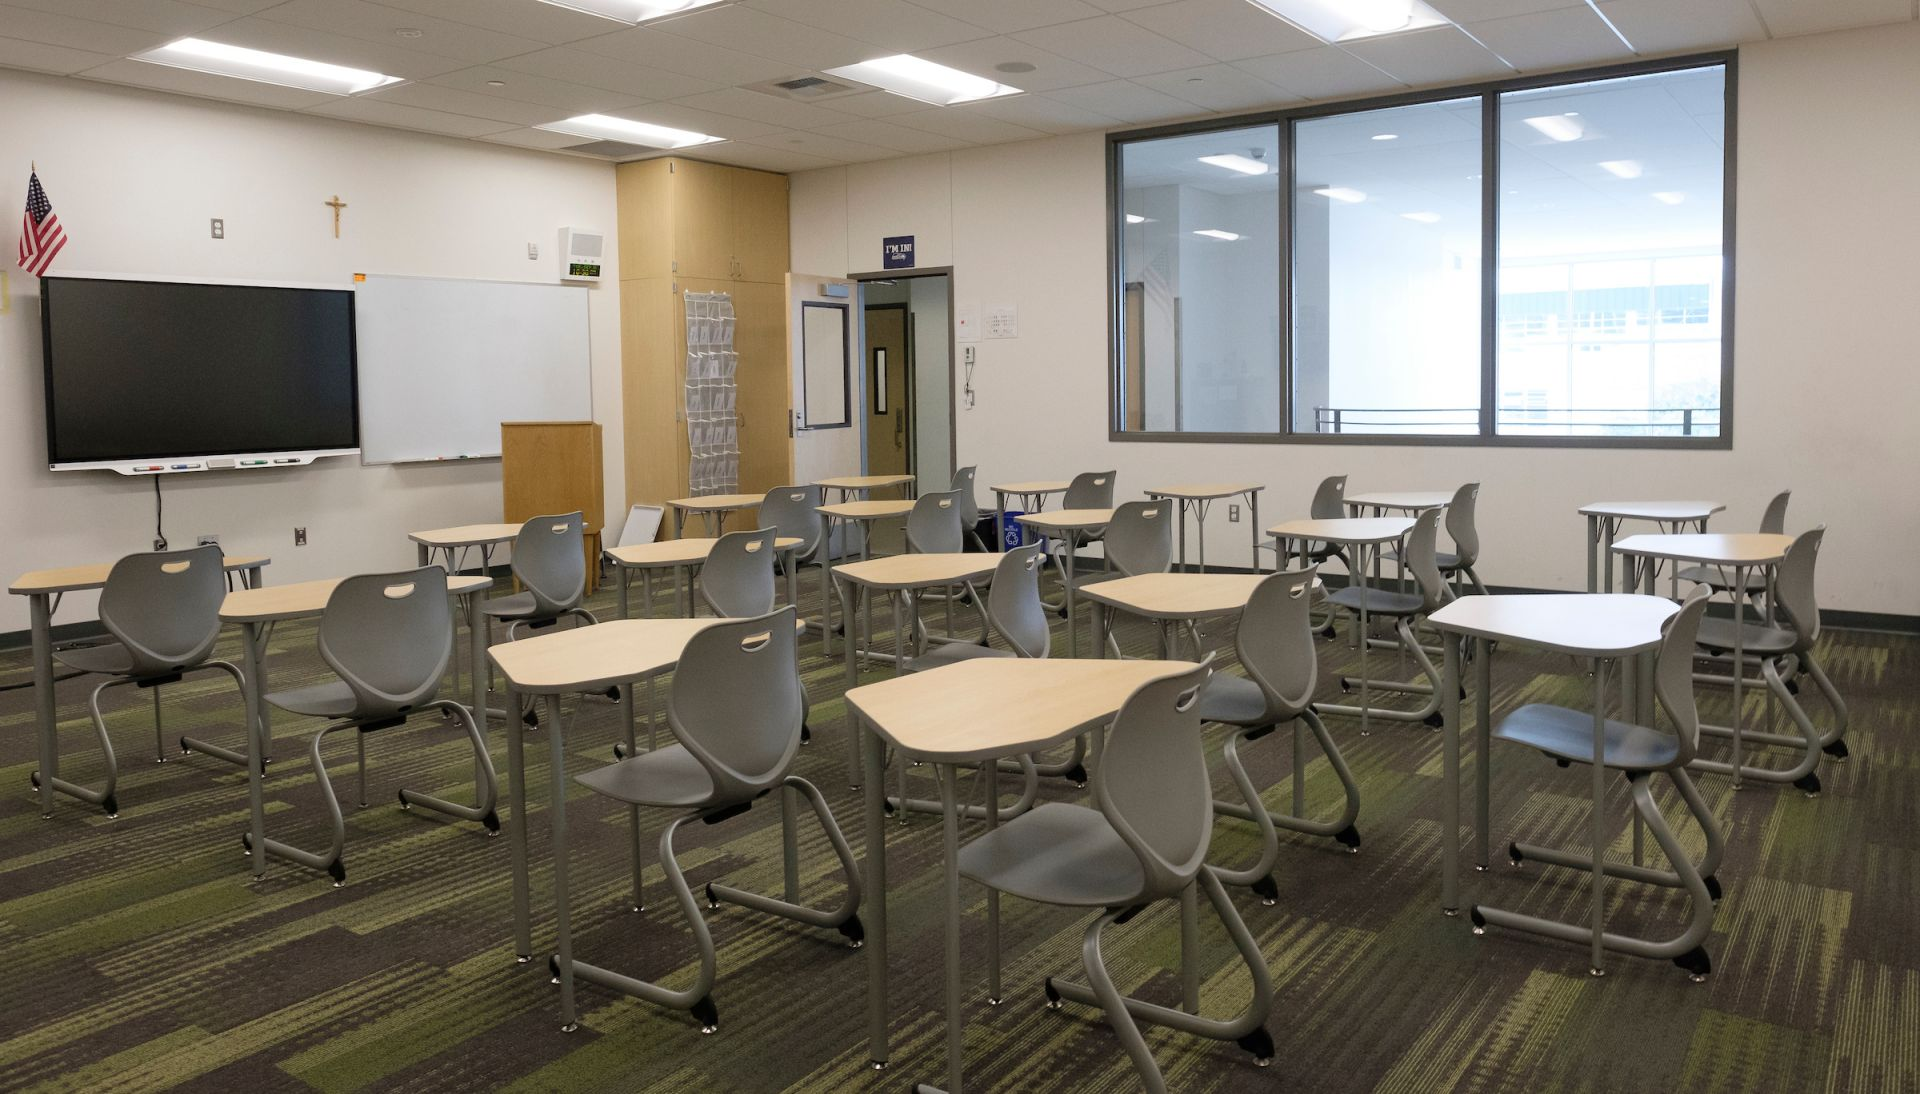 The new classroom in the Ernie Rose Activities Center is equipped with a SMART TV and flexible furniture to allow physical education classes the opportunity to easily move between working out and studying.